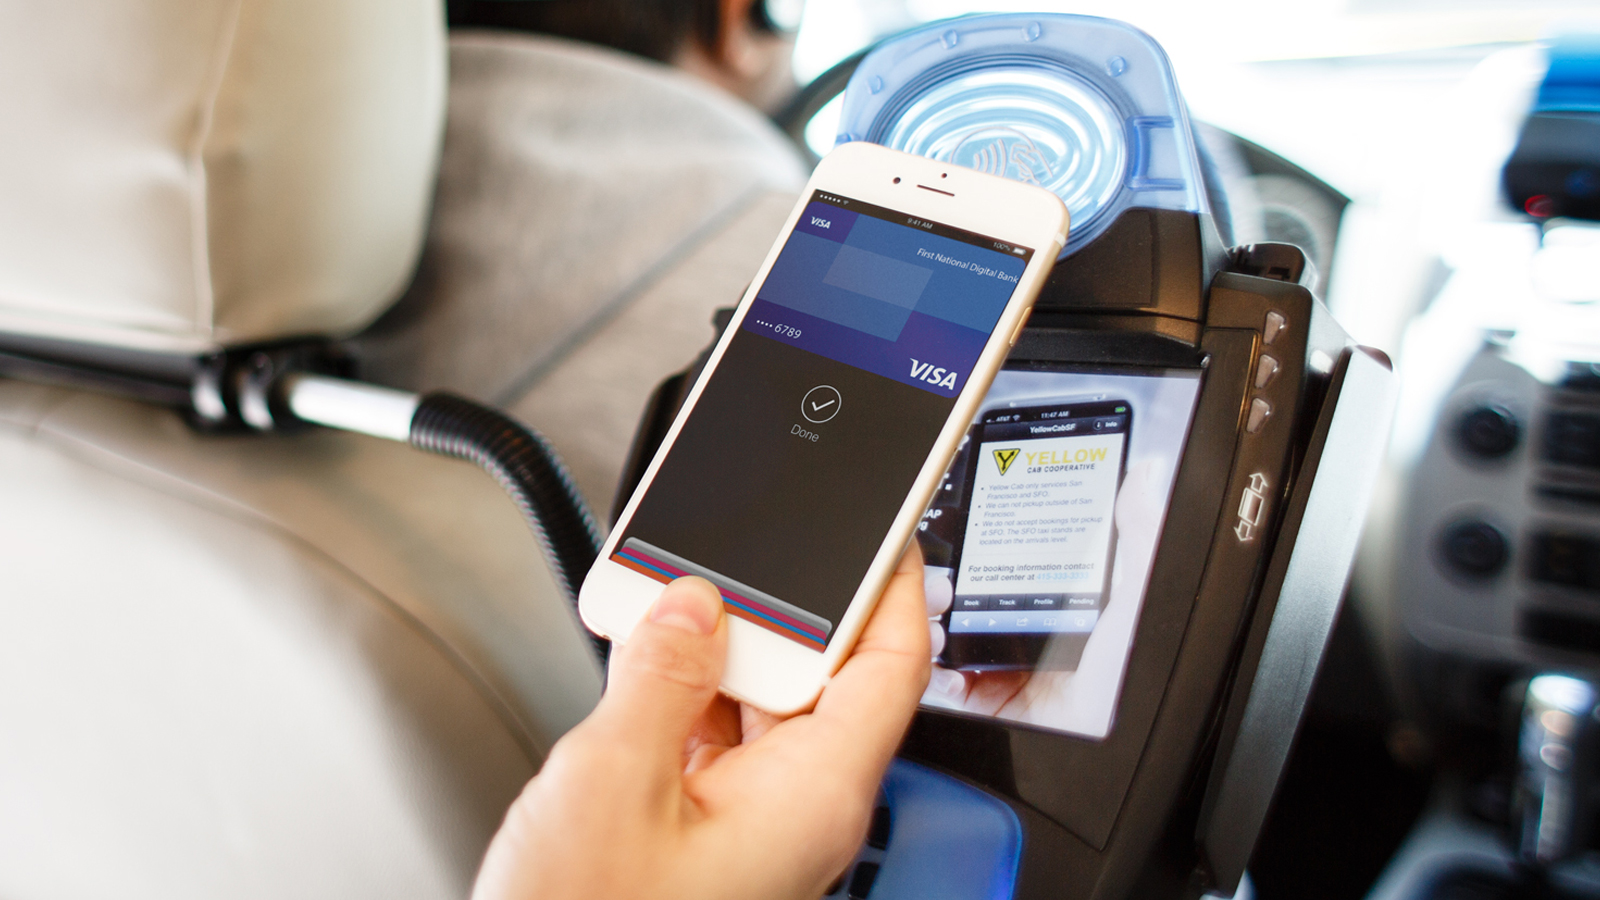 Using Apple Pay at a contactless-enabled terminal inside a taxi.